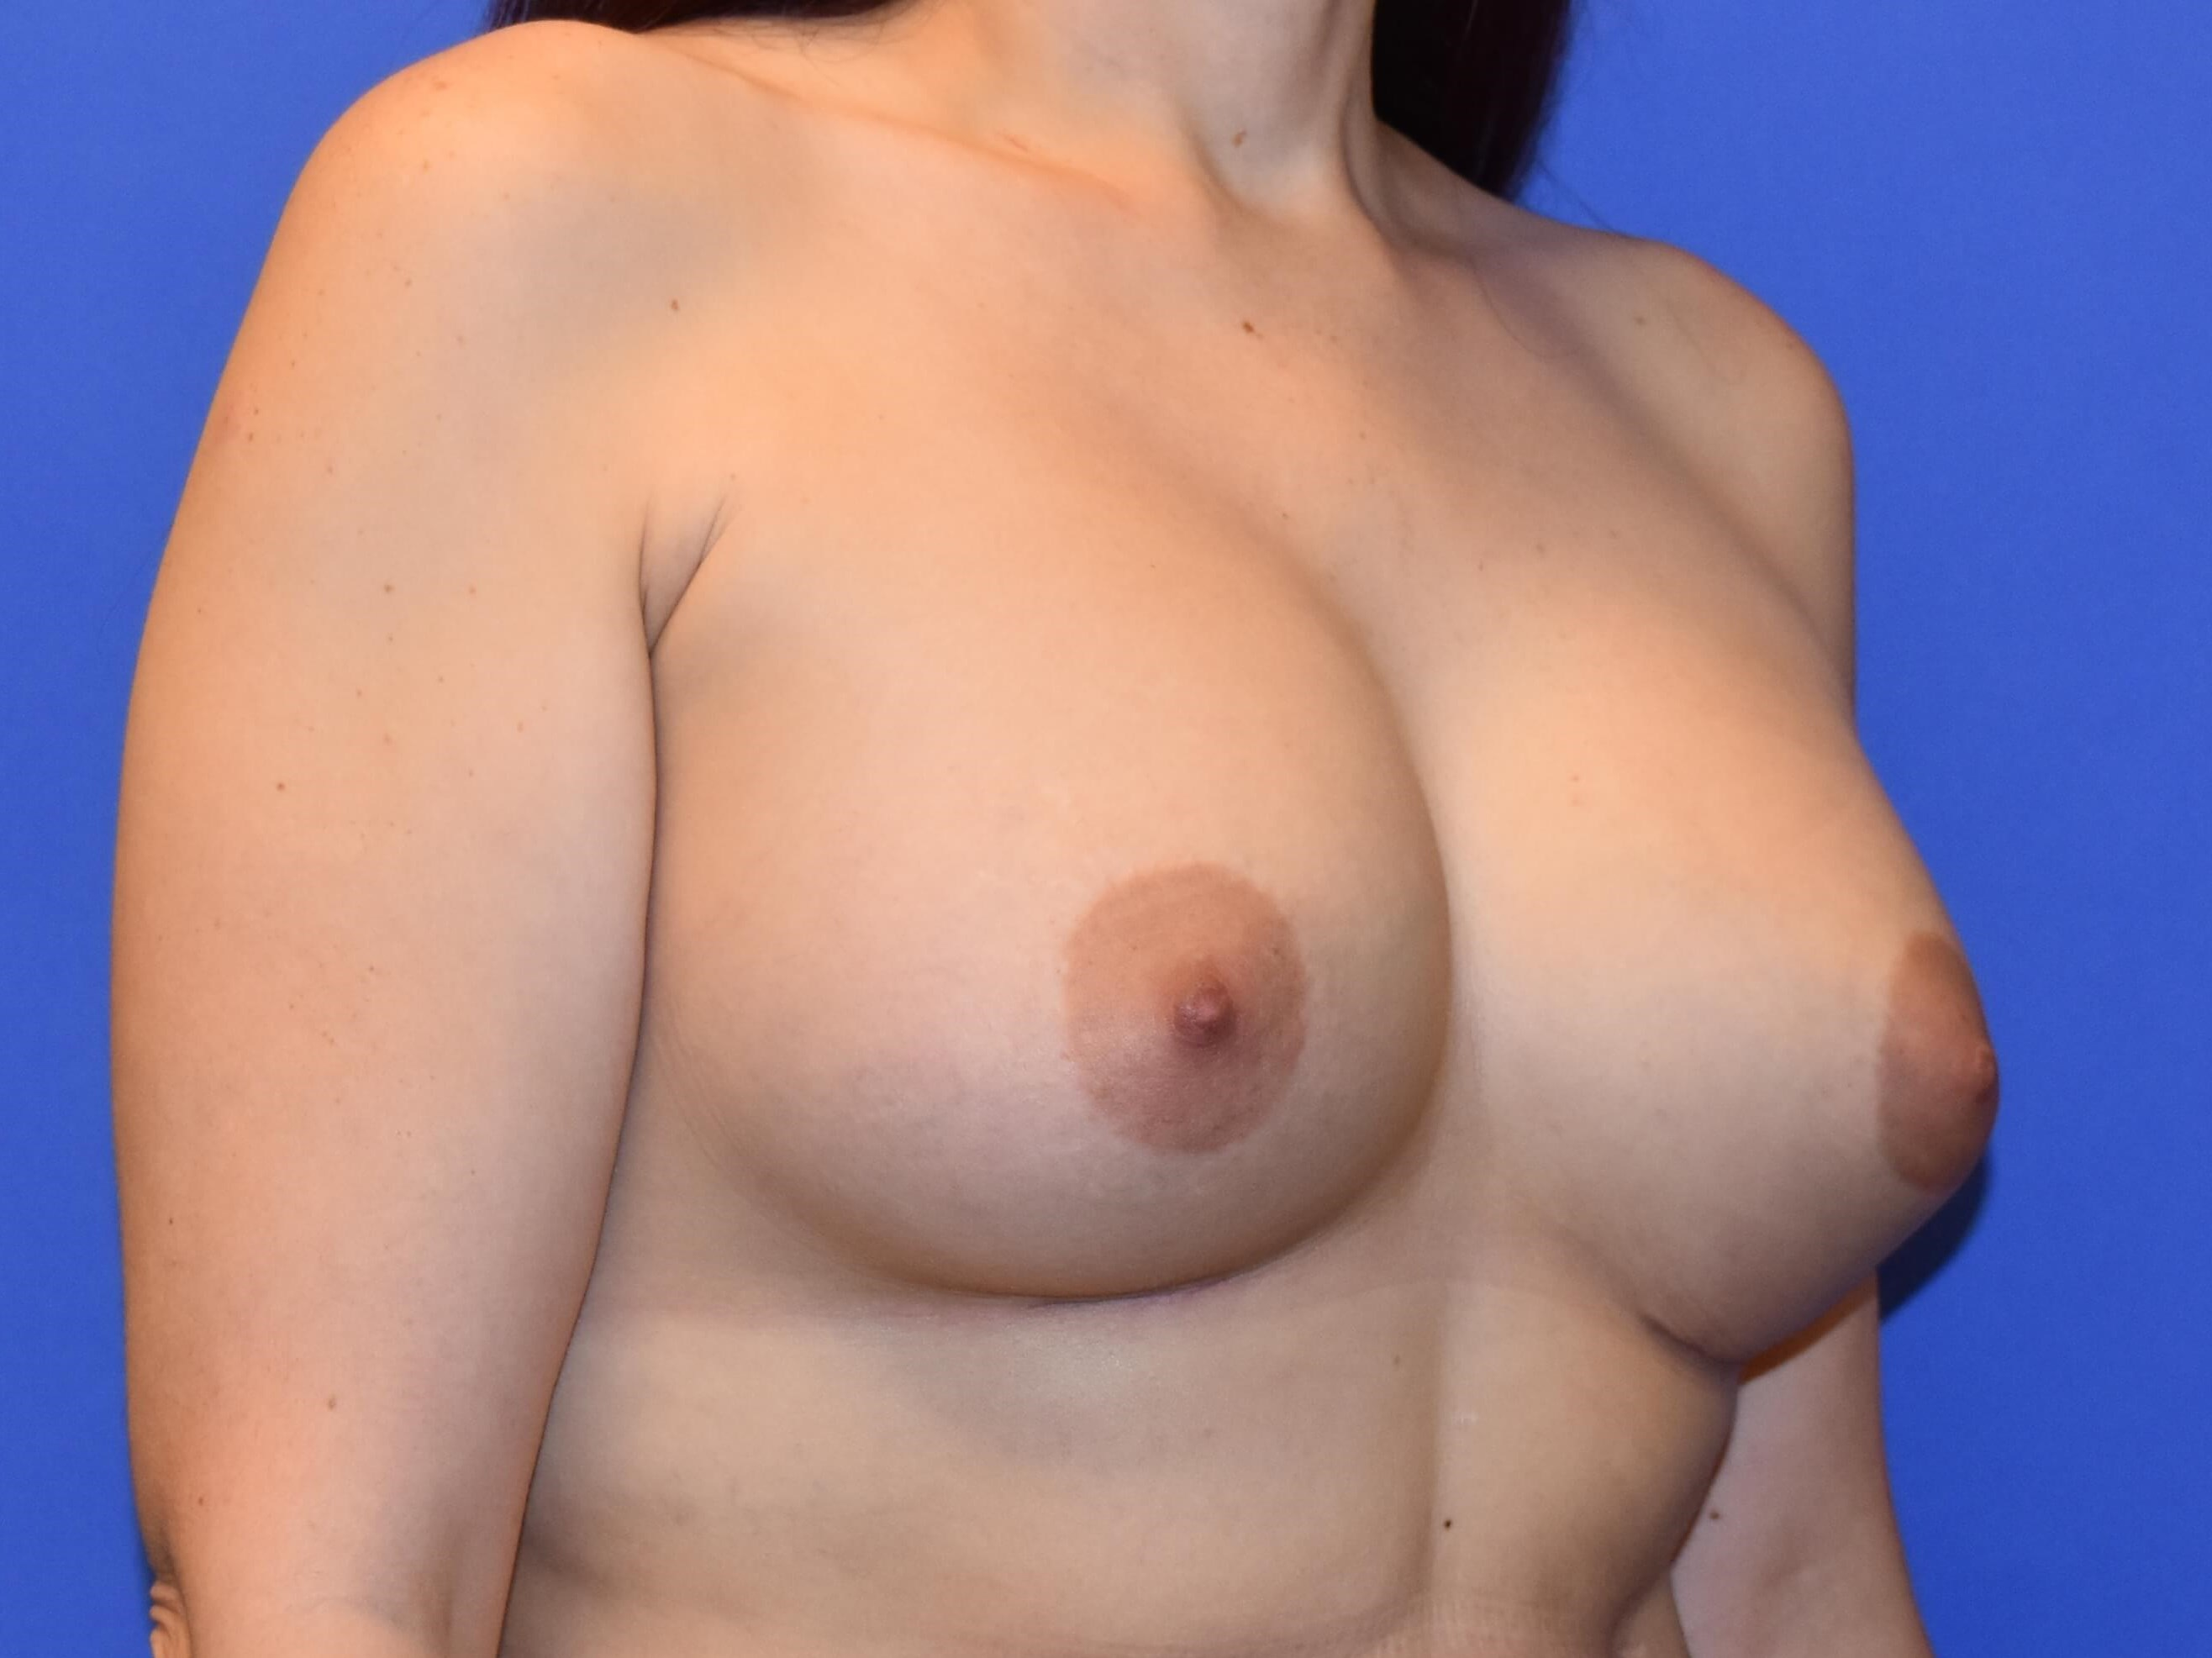 Breast Augmentation - Houston 3 month post-op